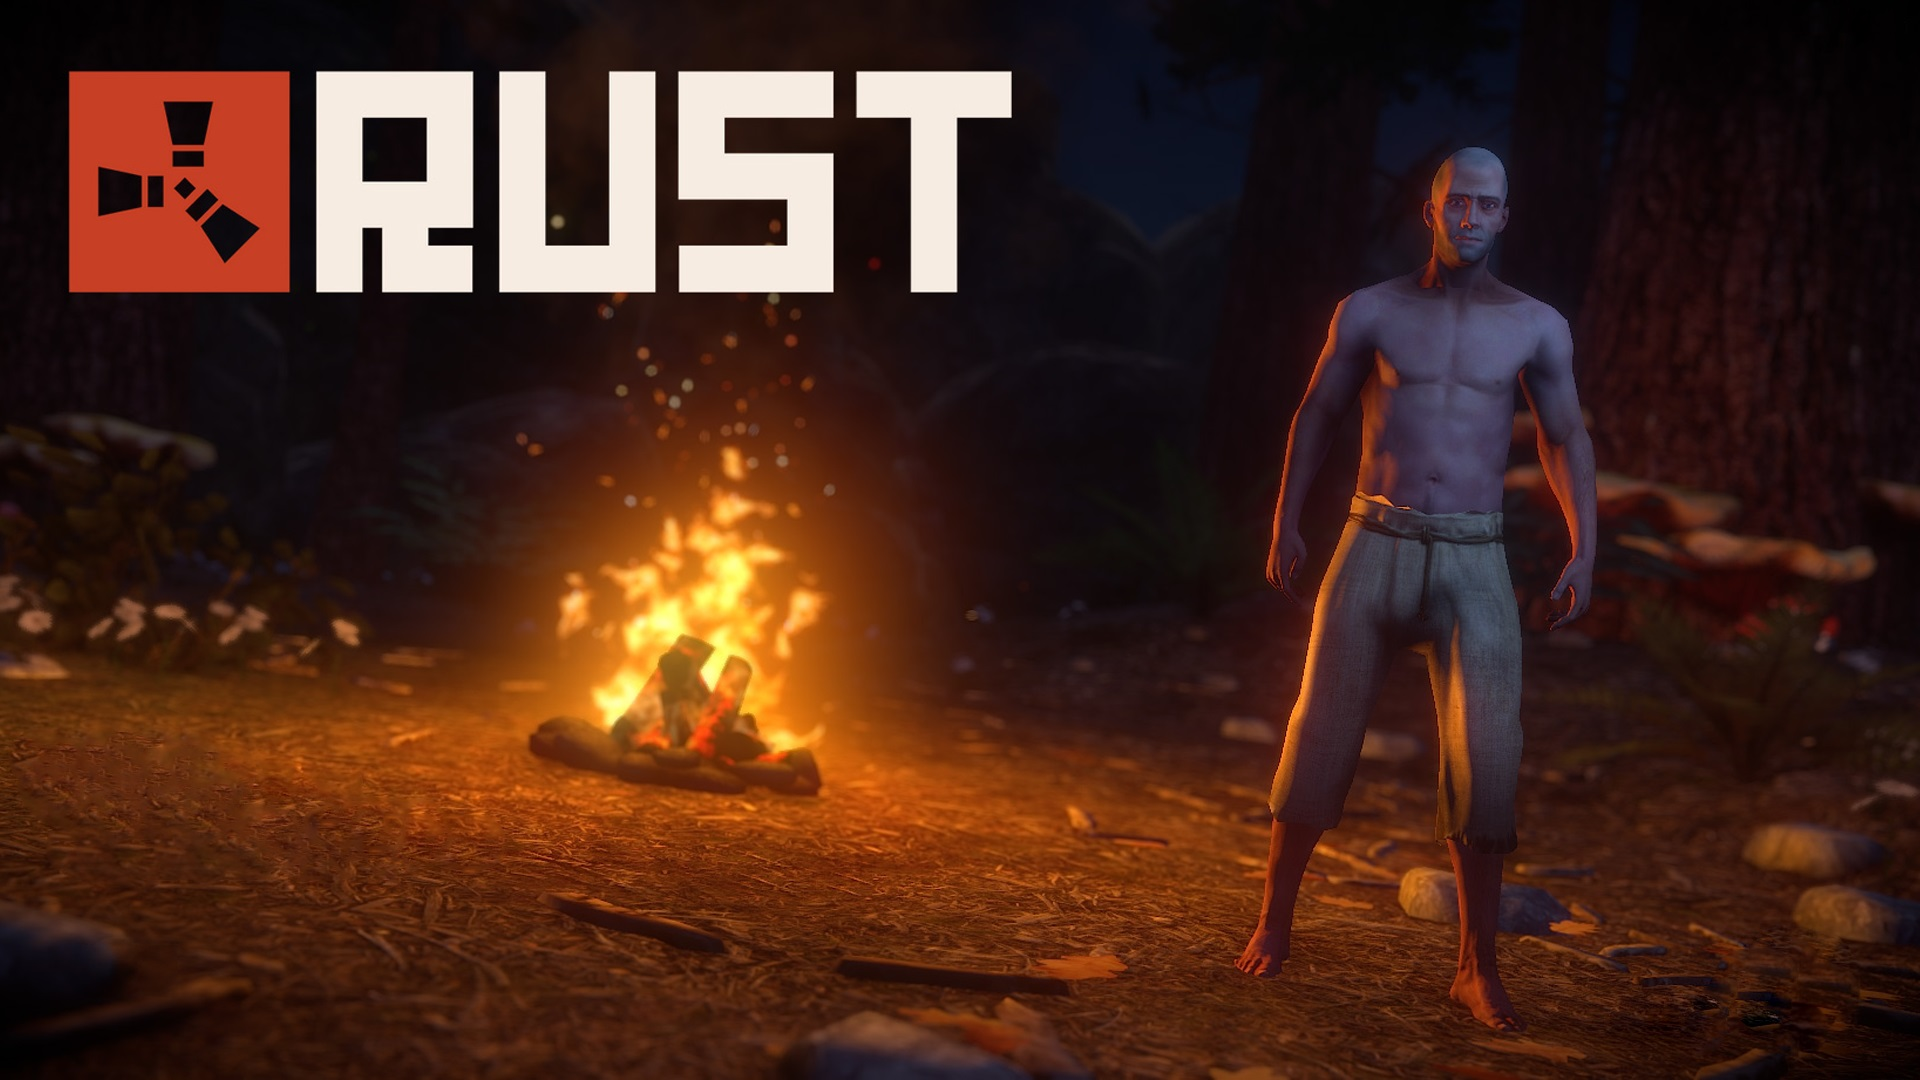 Rust wallpaper 4